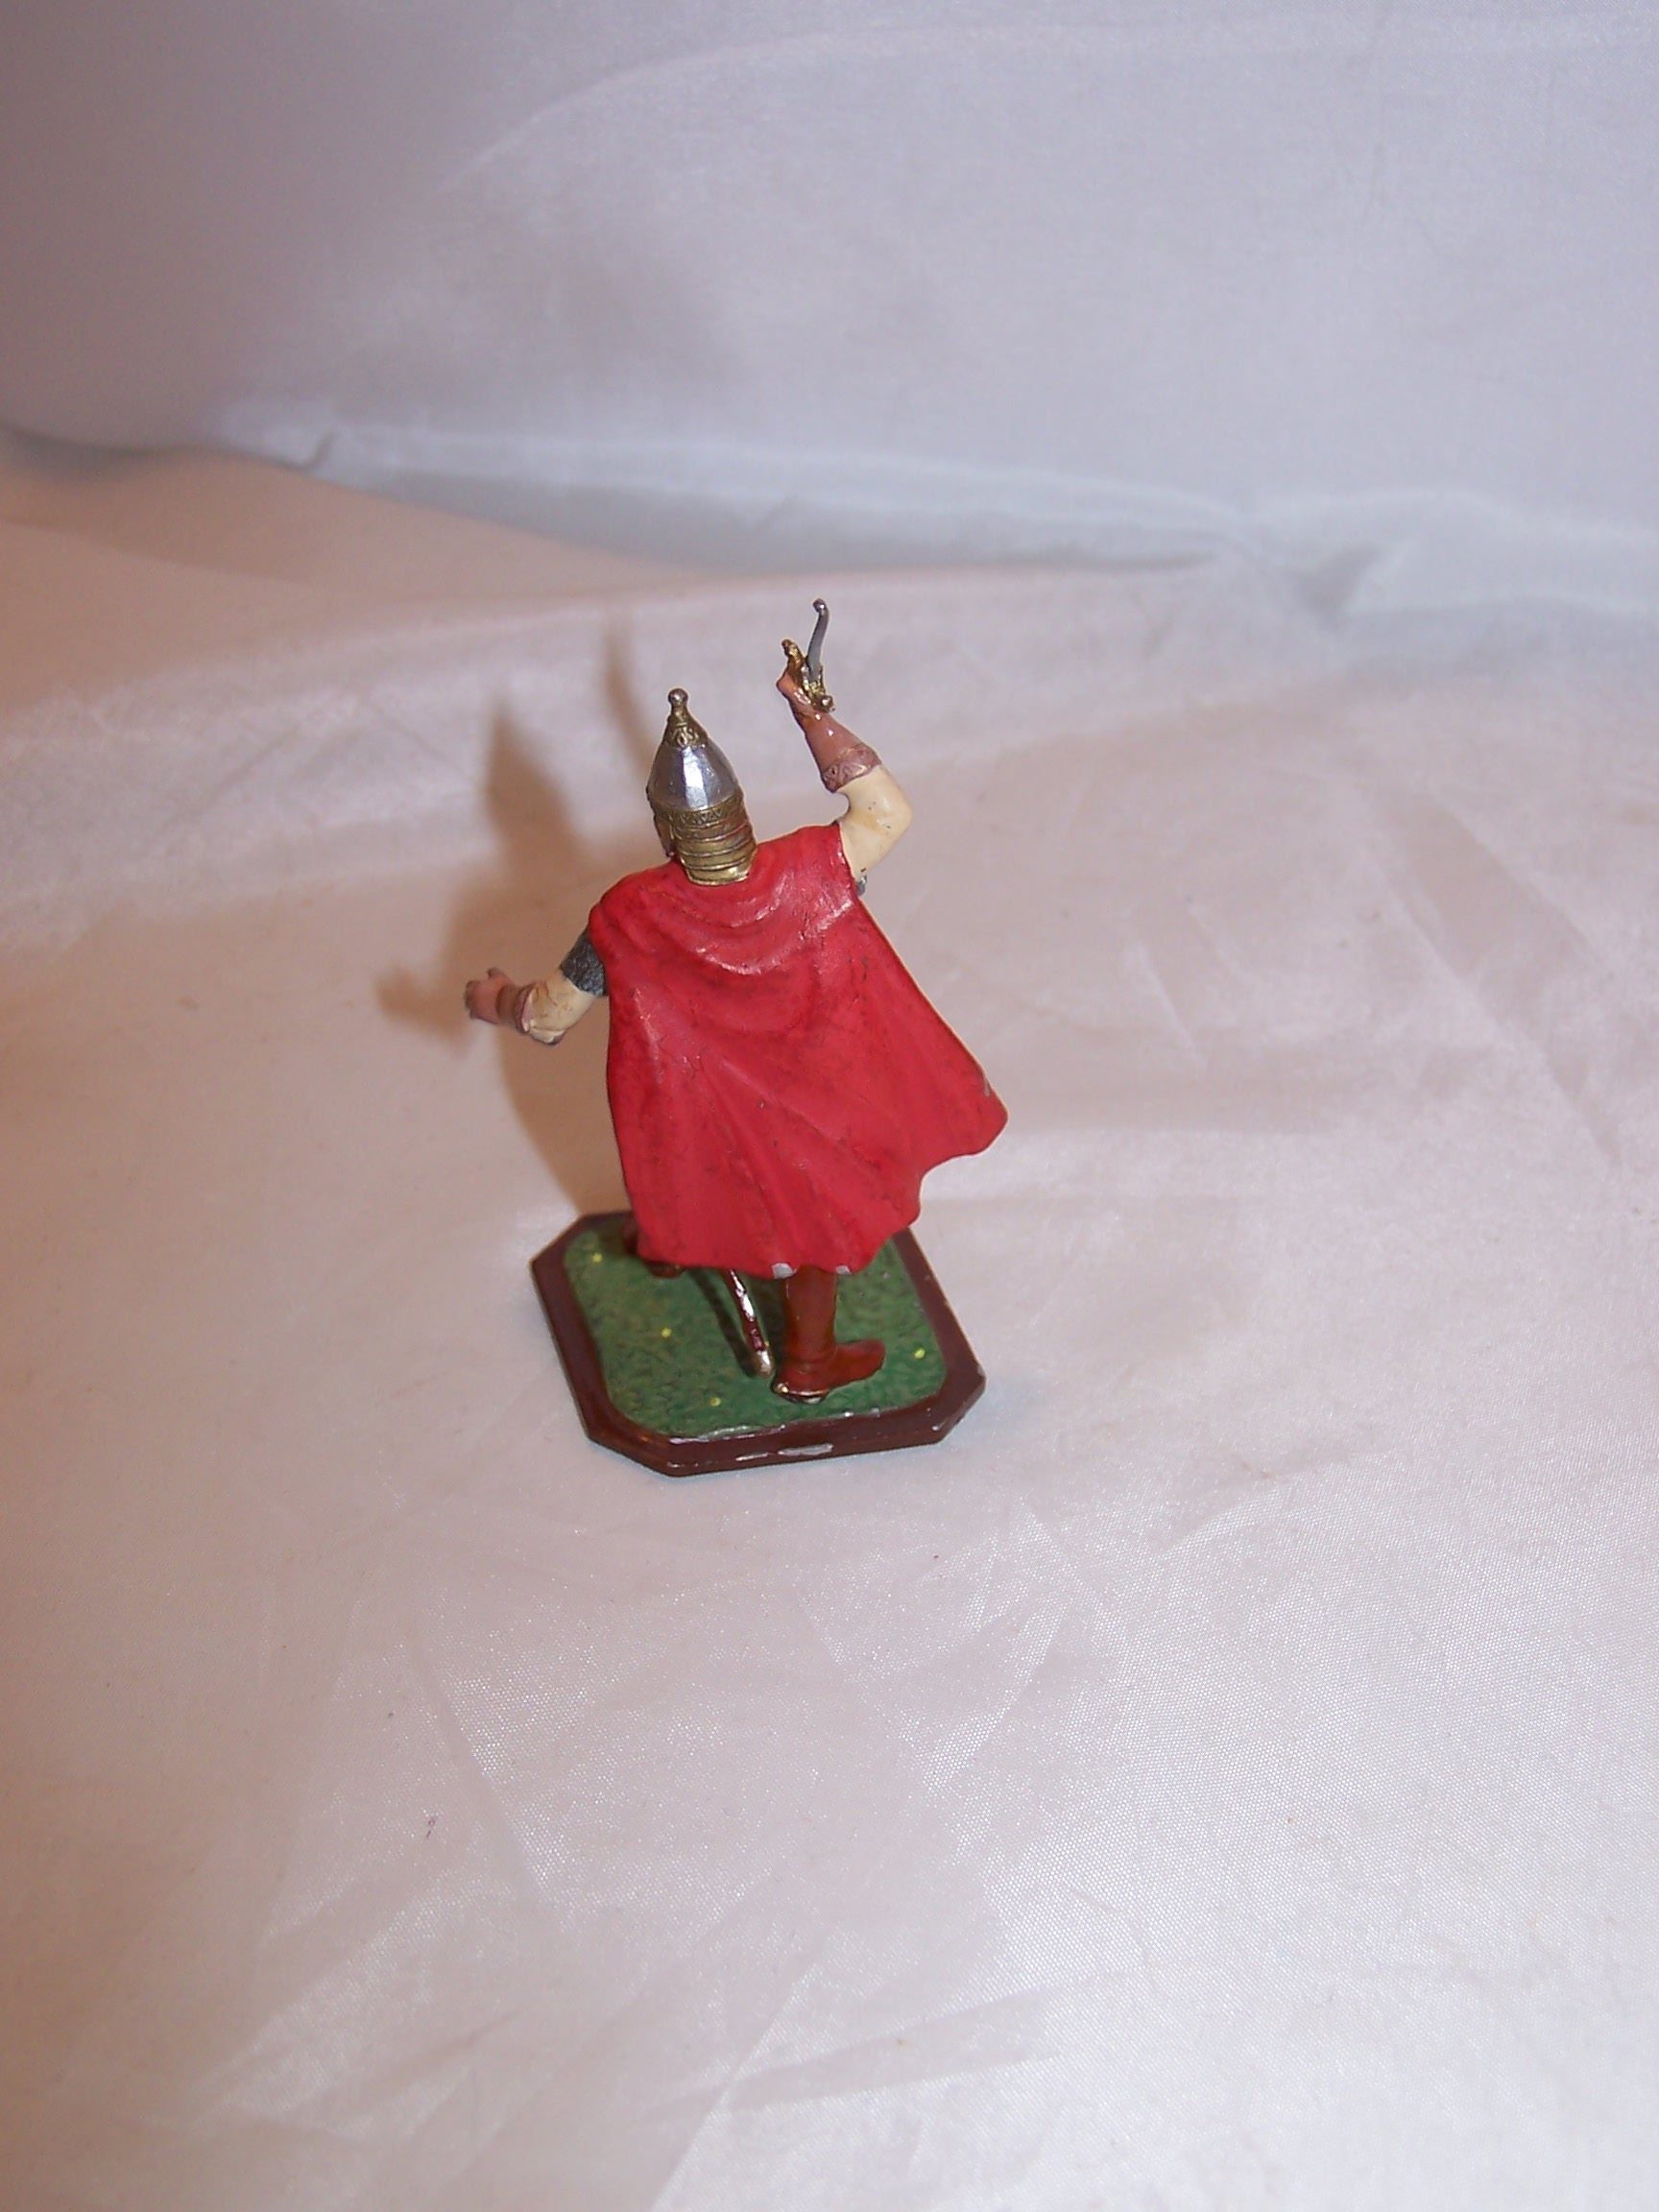 Image 3 of Roman Soldier, Painted Metal, Signed, Highly Detailed